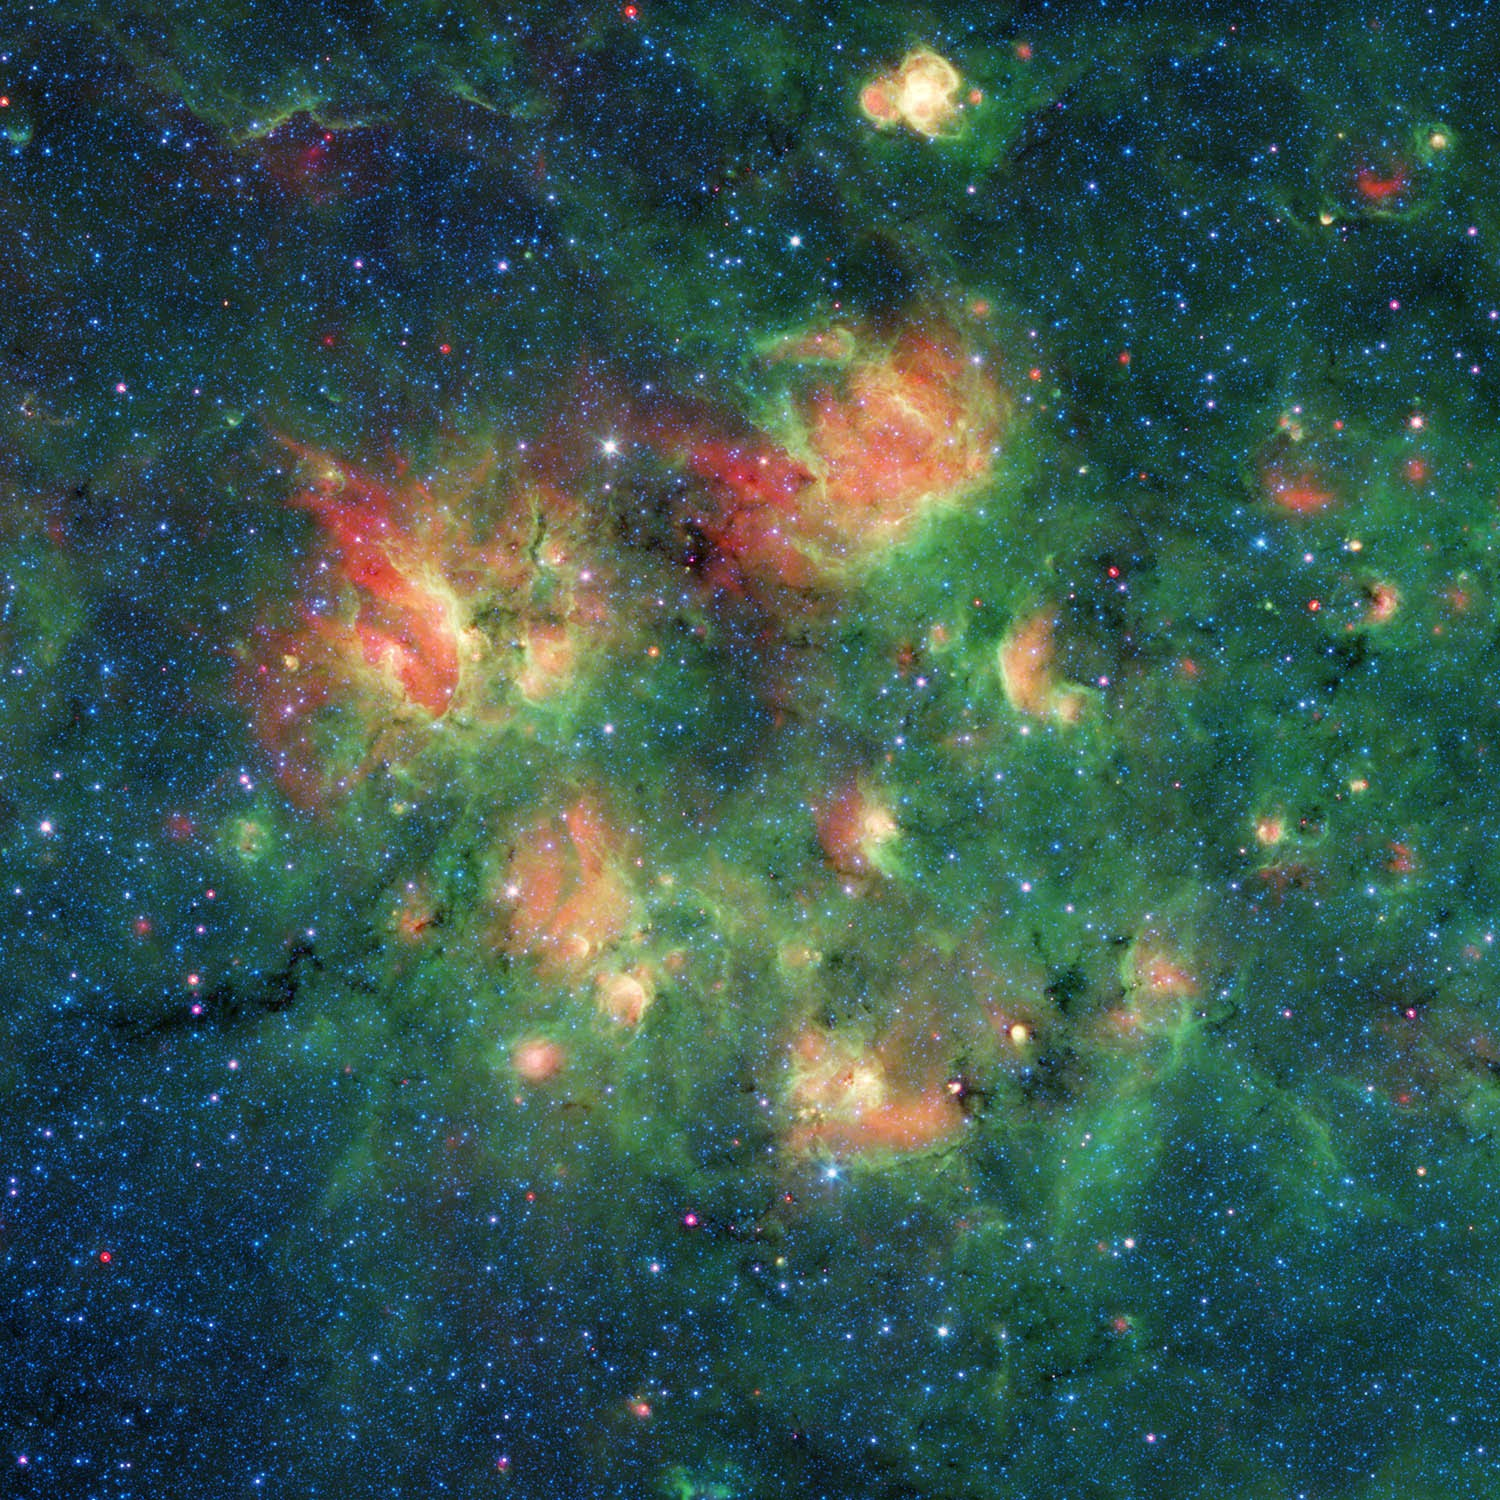 A Spitzer Space Telescope of a region within the Milky Way. Credit: NASA/JPL-Caltech/Milky Way Project